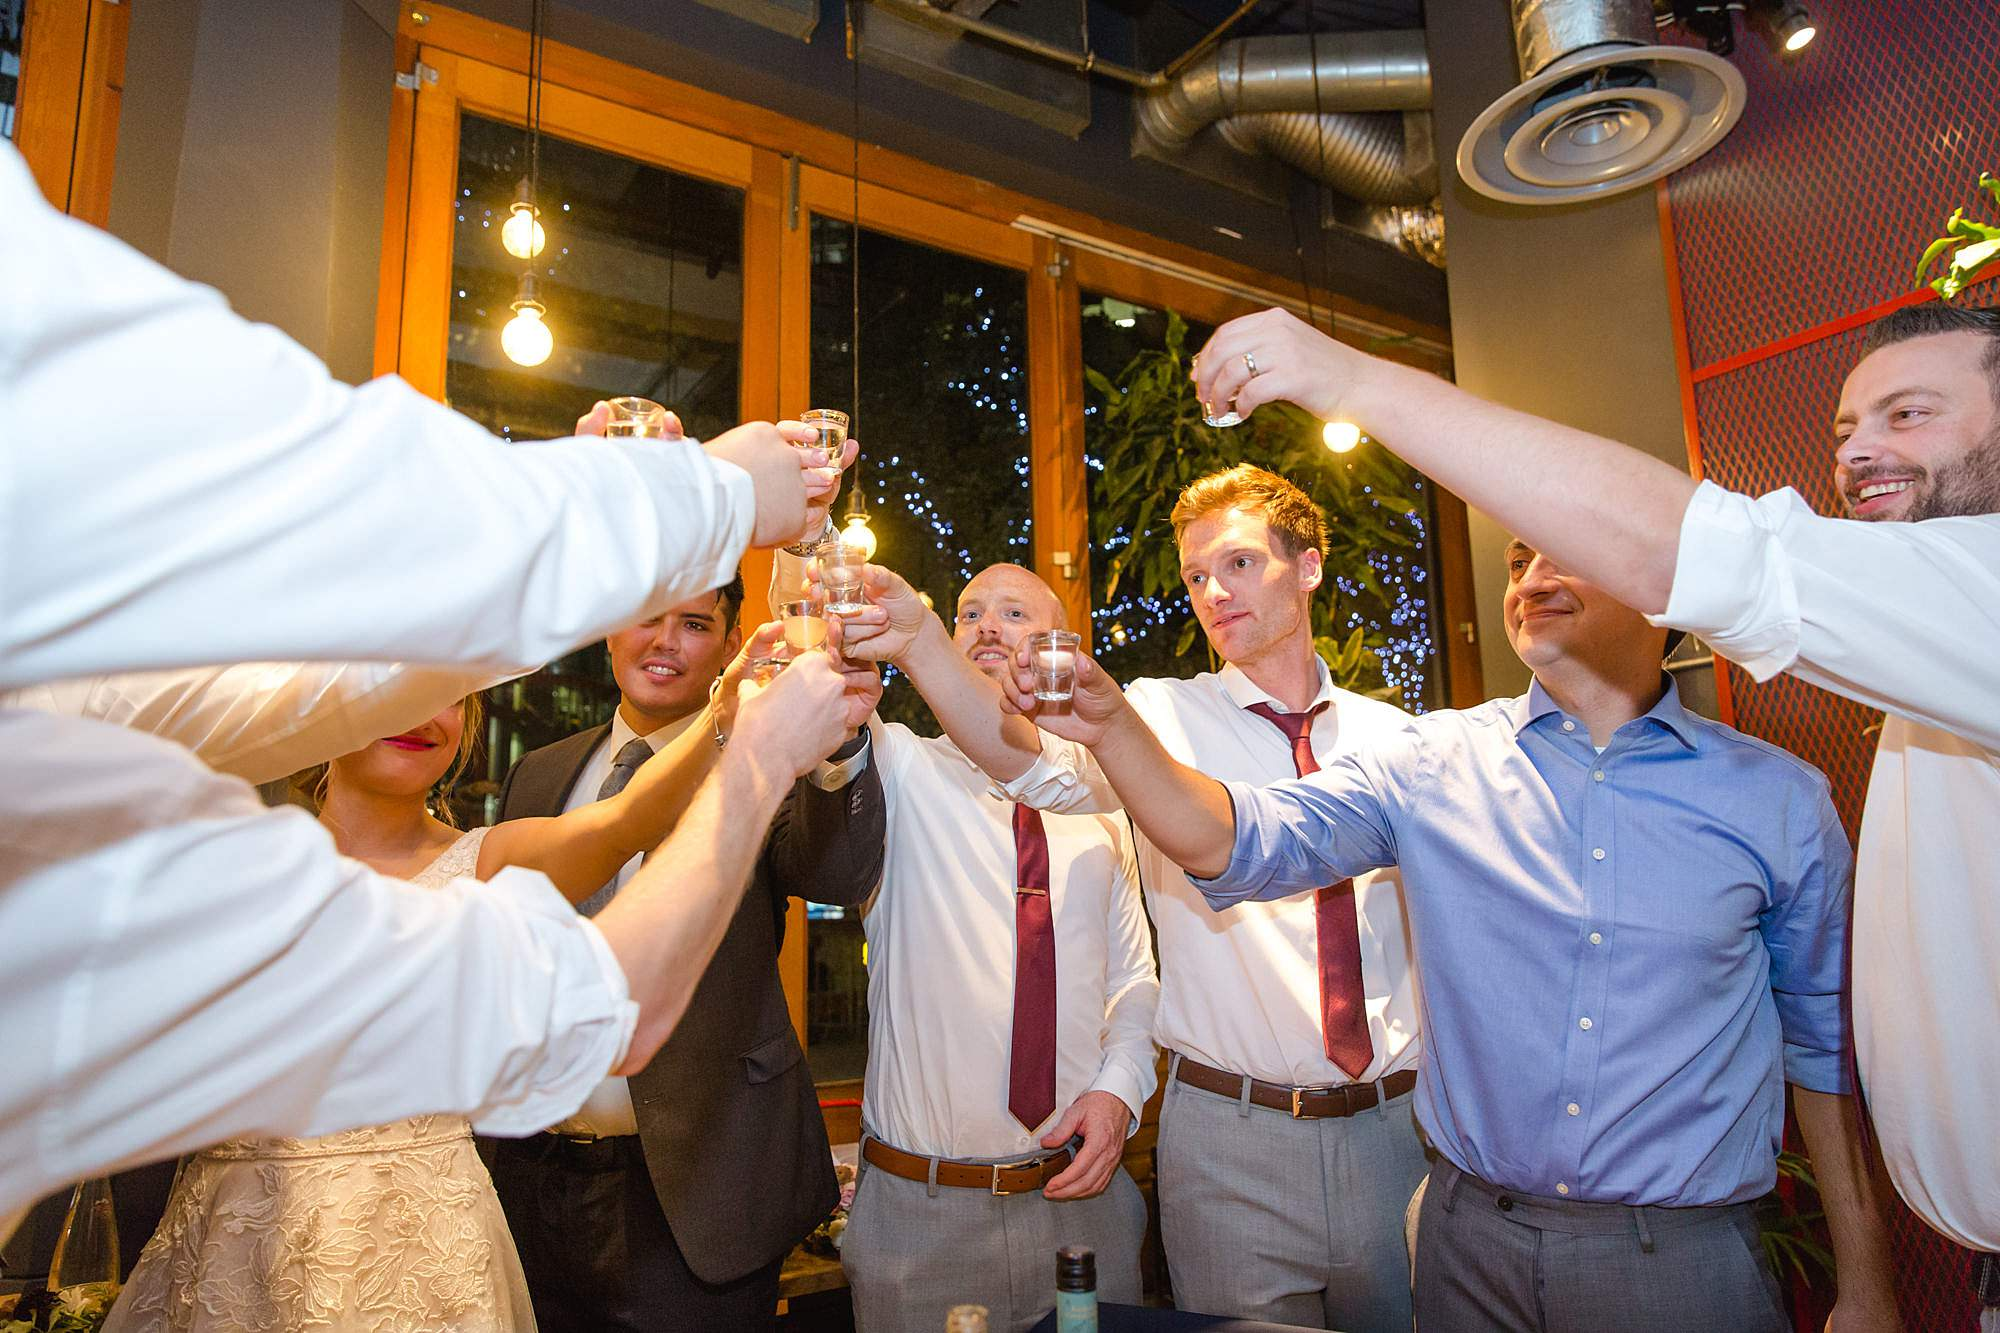 The Union Paddington wedding guests toast with shots